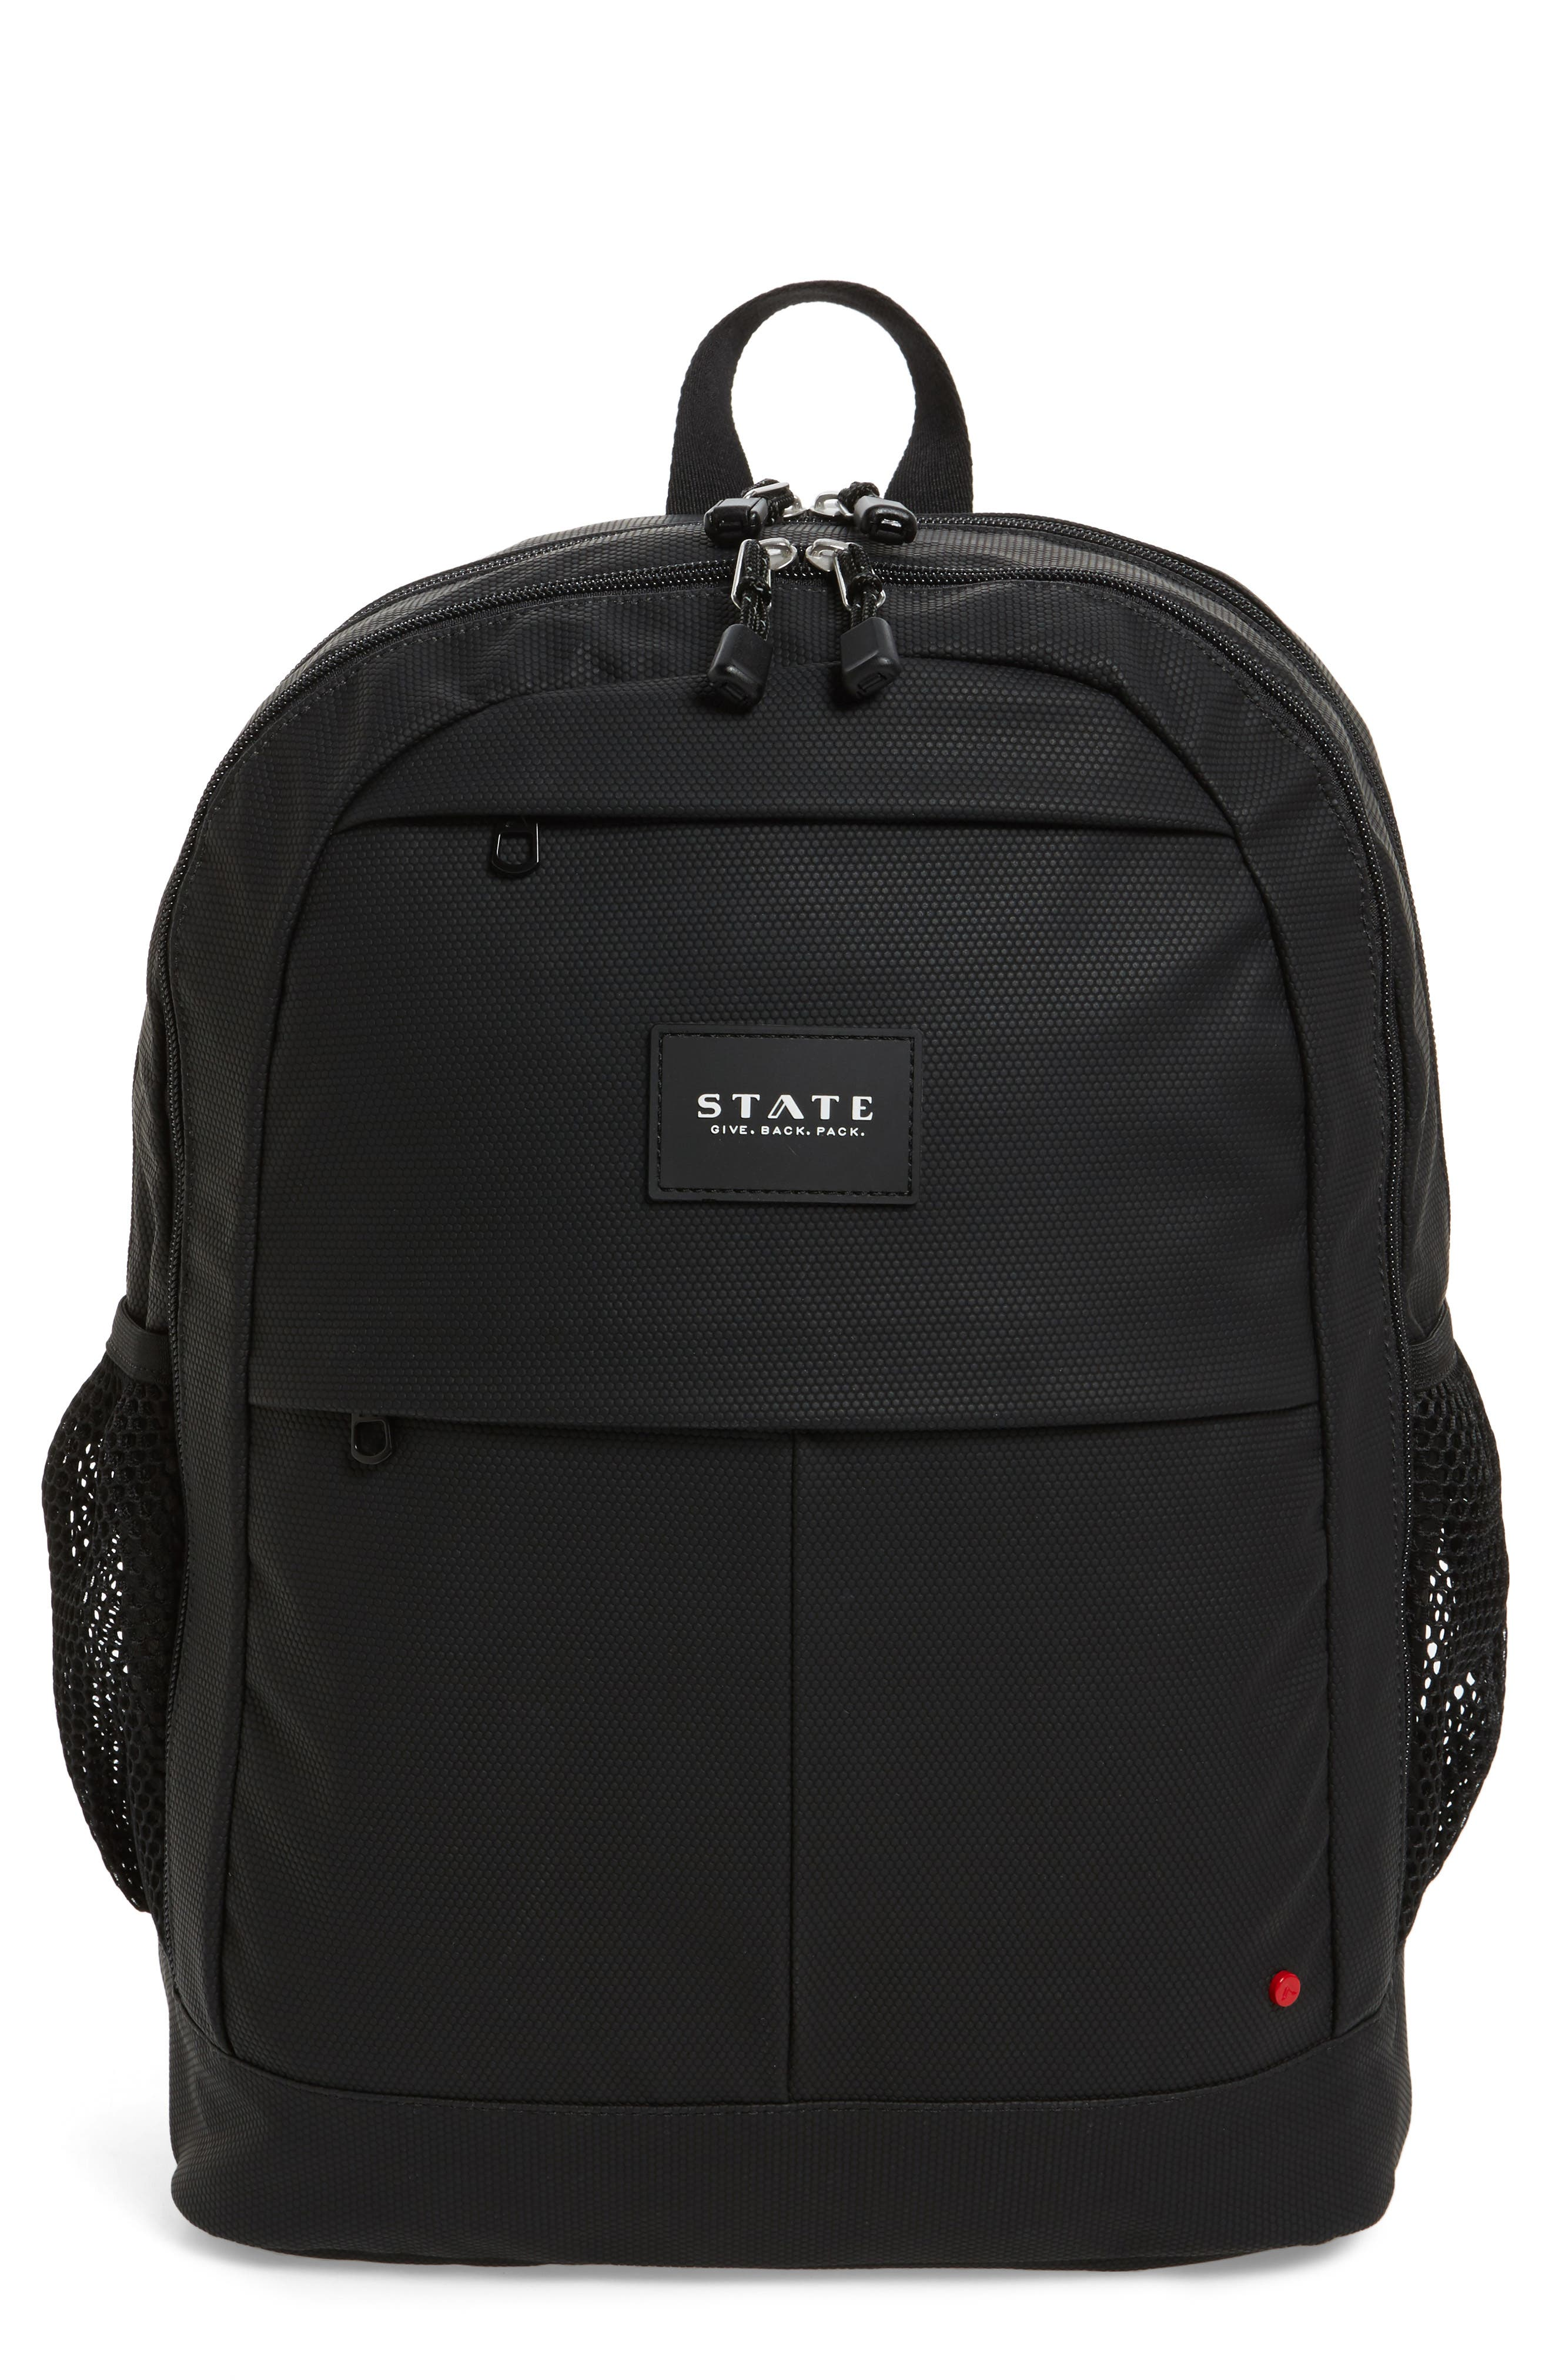 Main Image - STATE Bags Leny Backpack